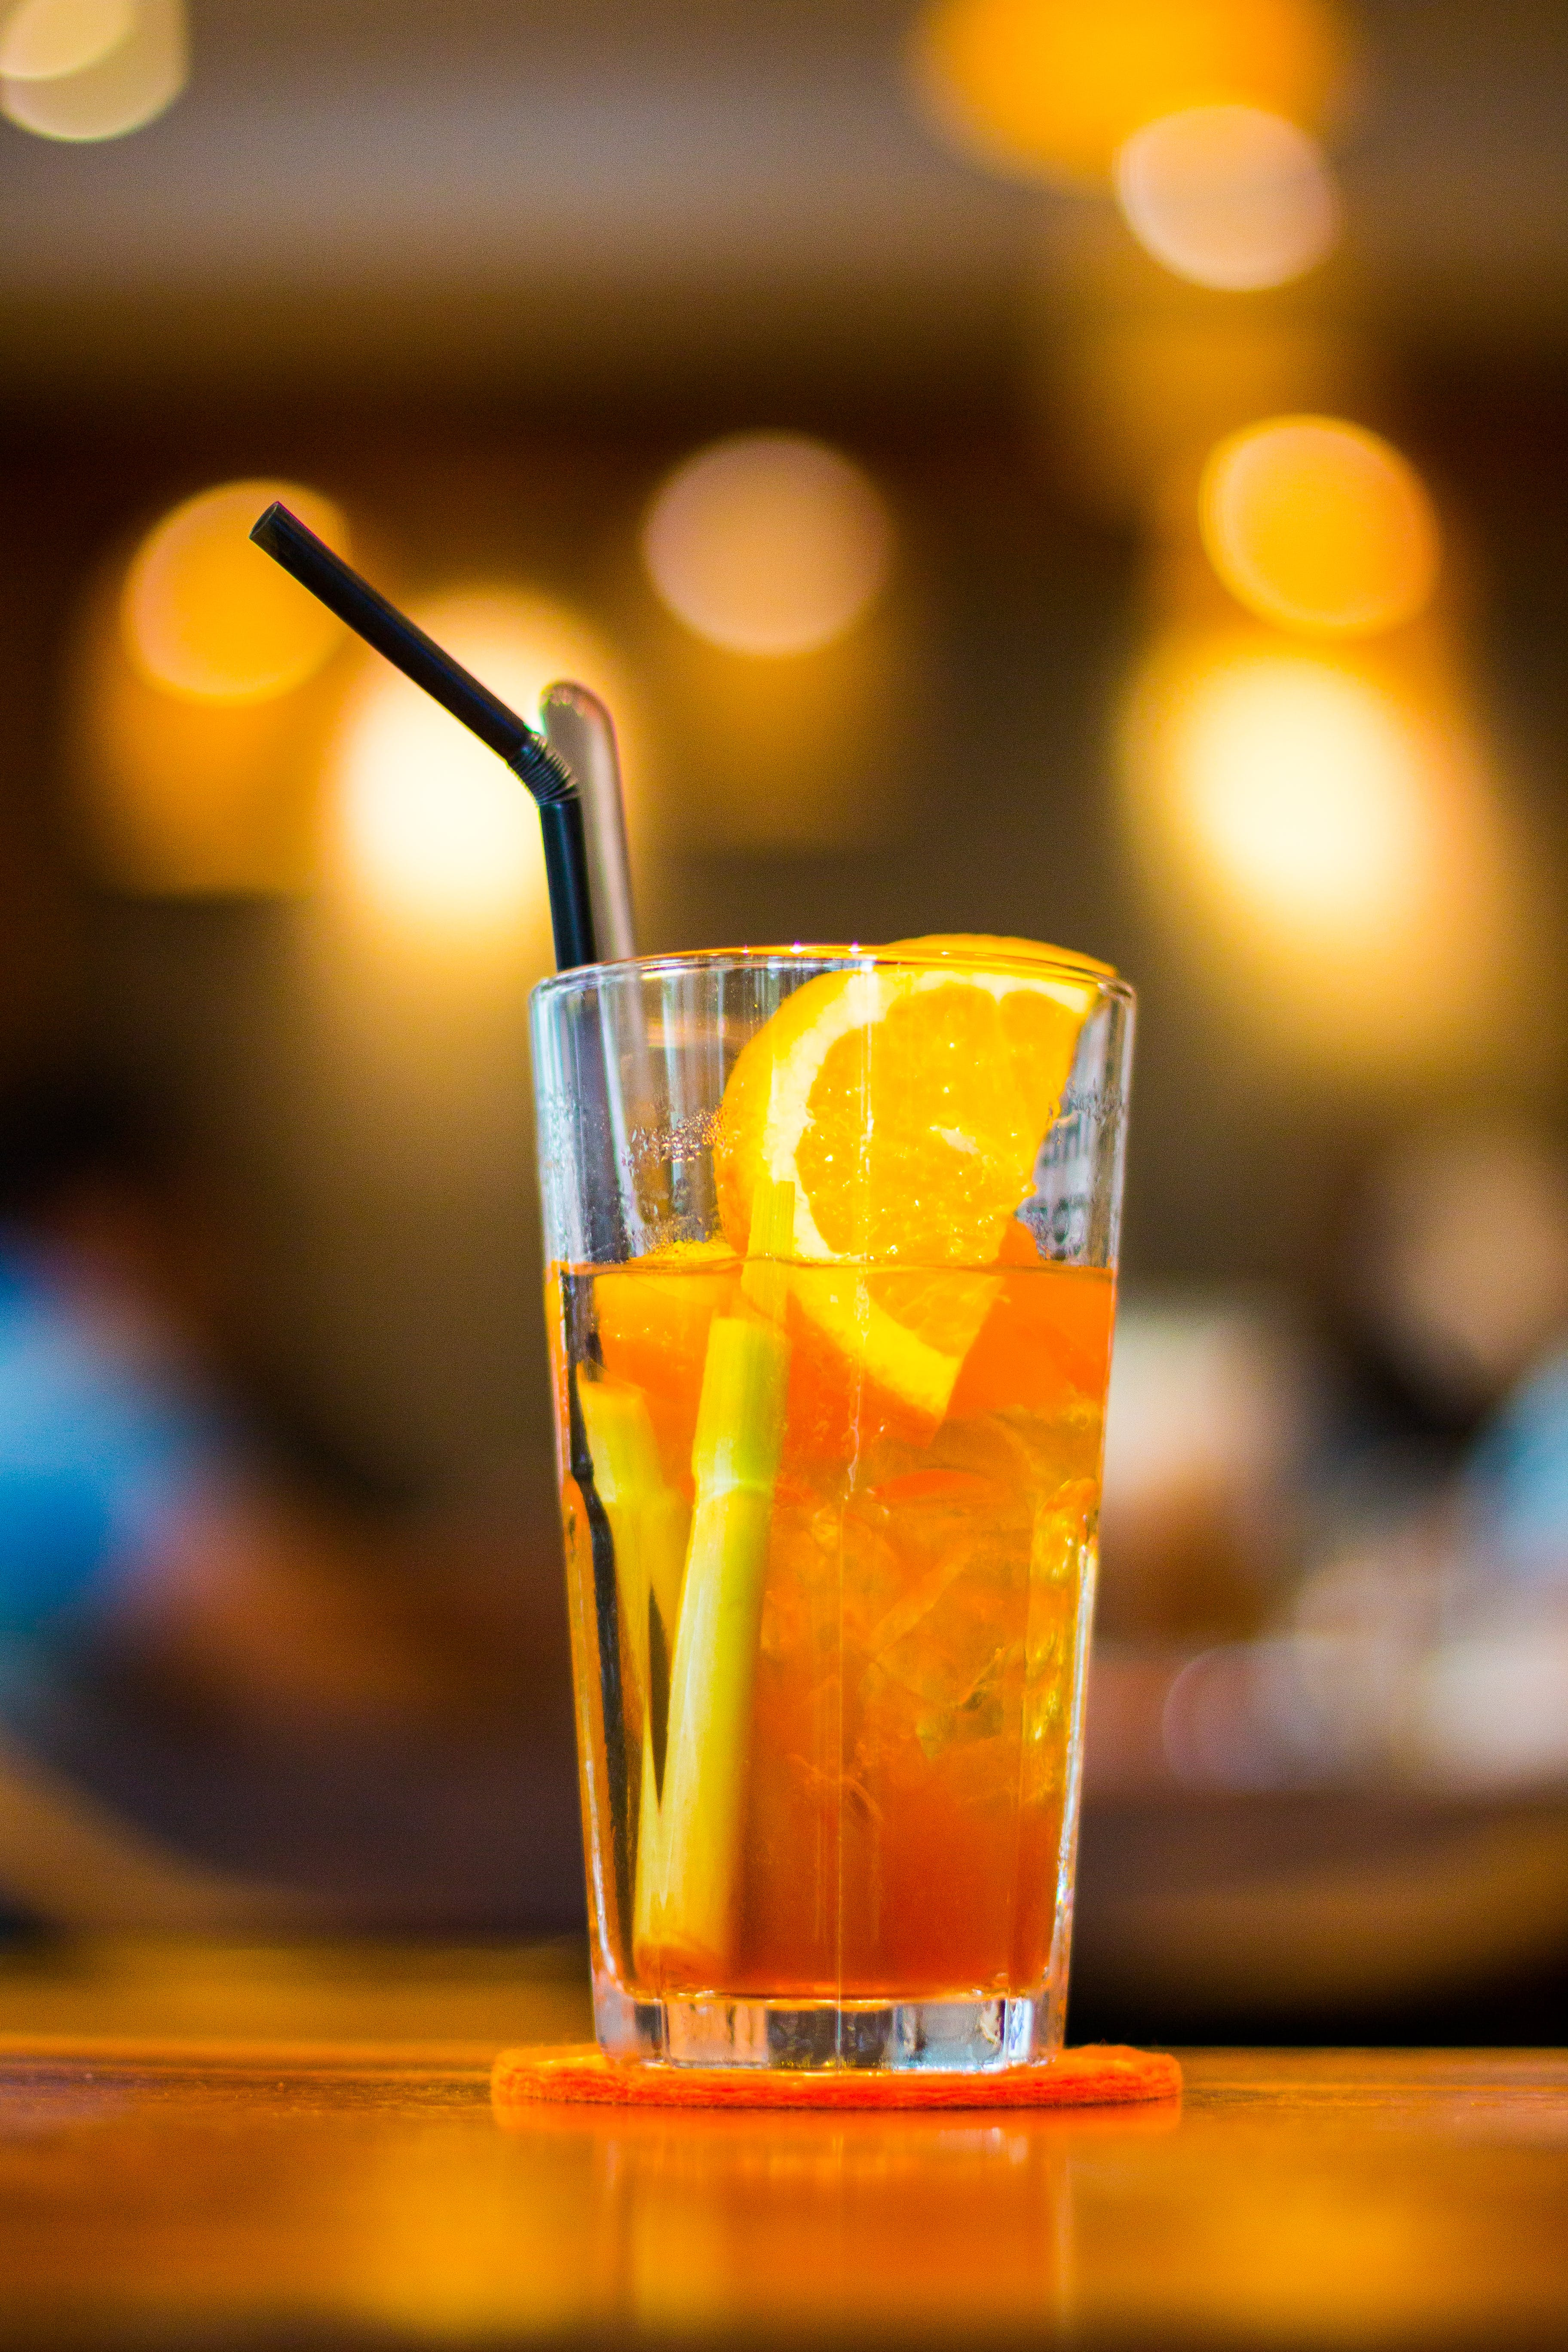 Clear Drinking Glass Filled With Orange Juice With Black Straw